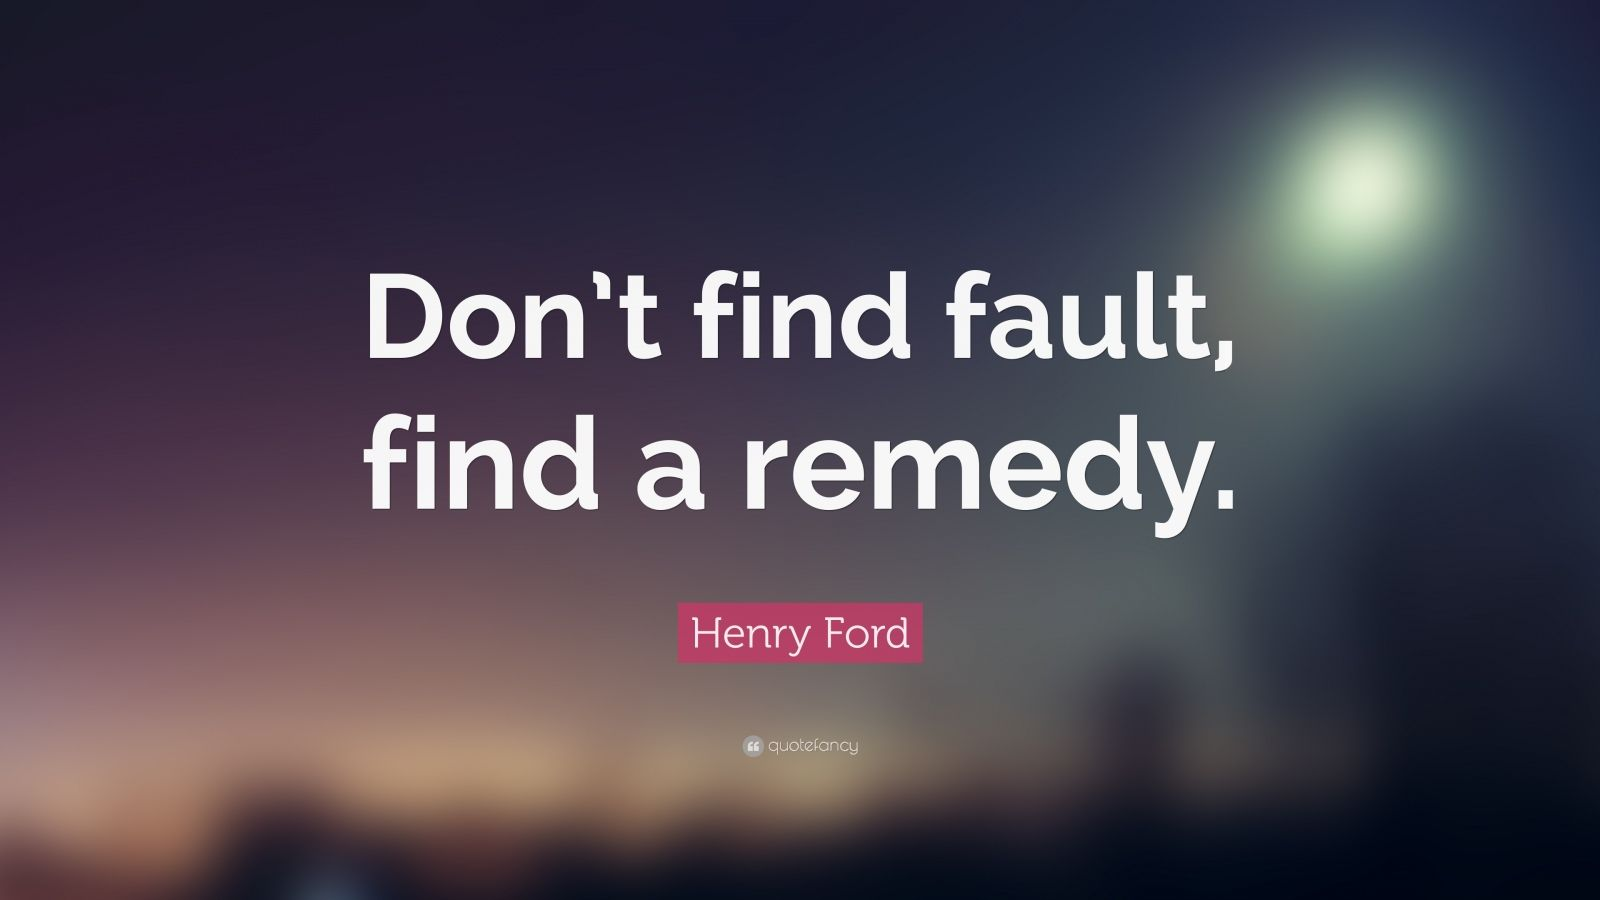 Images Of Inspiring Quotes Wallpaper Henry Ford Quote Don T Find Fault Find A Remedy 24